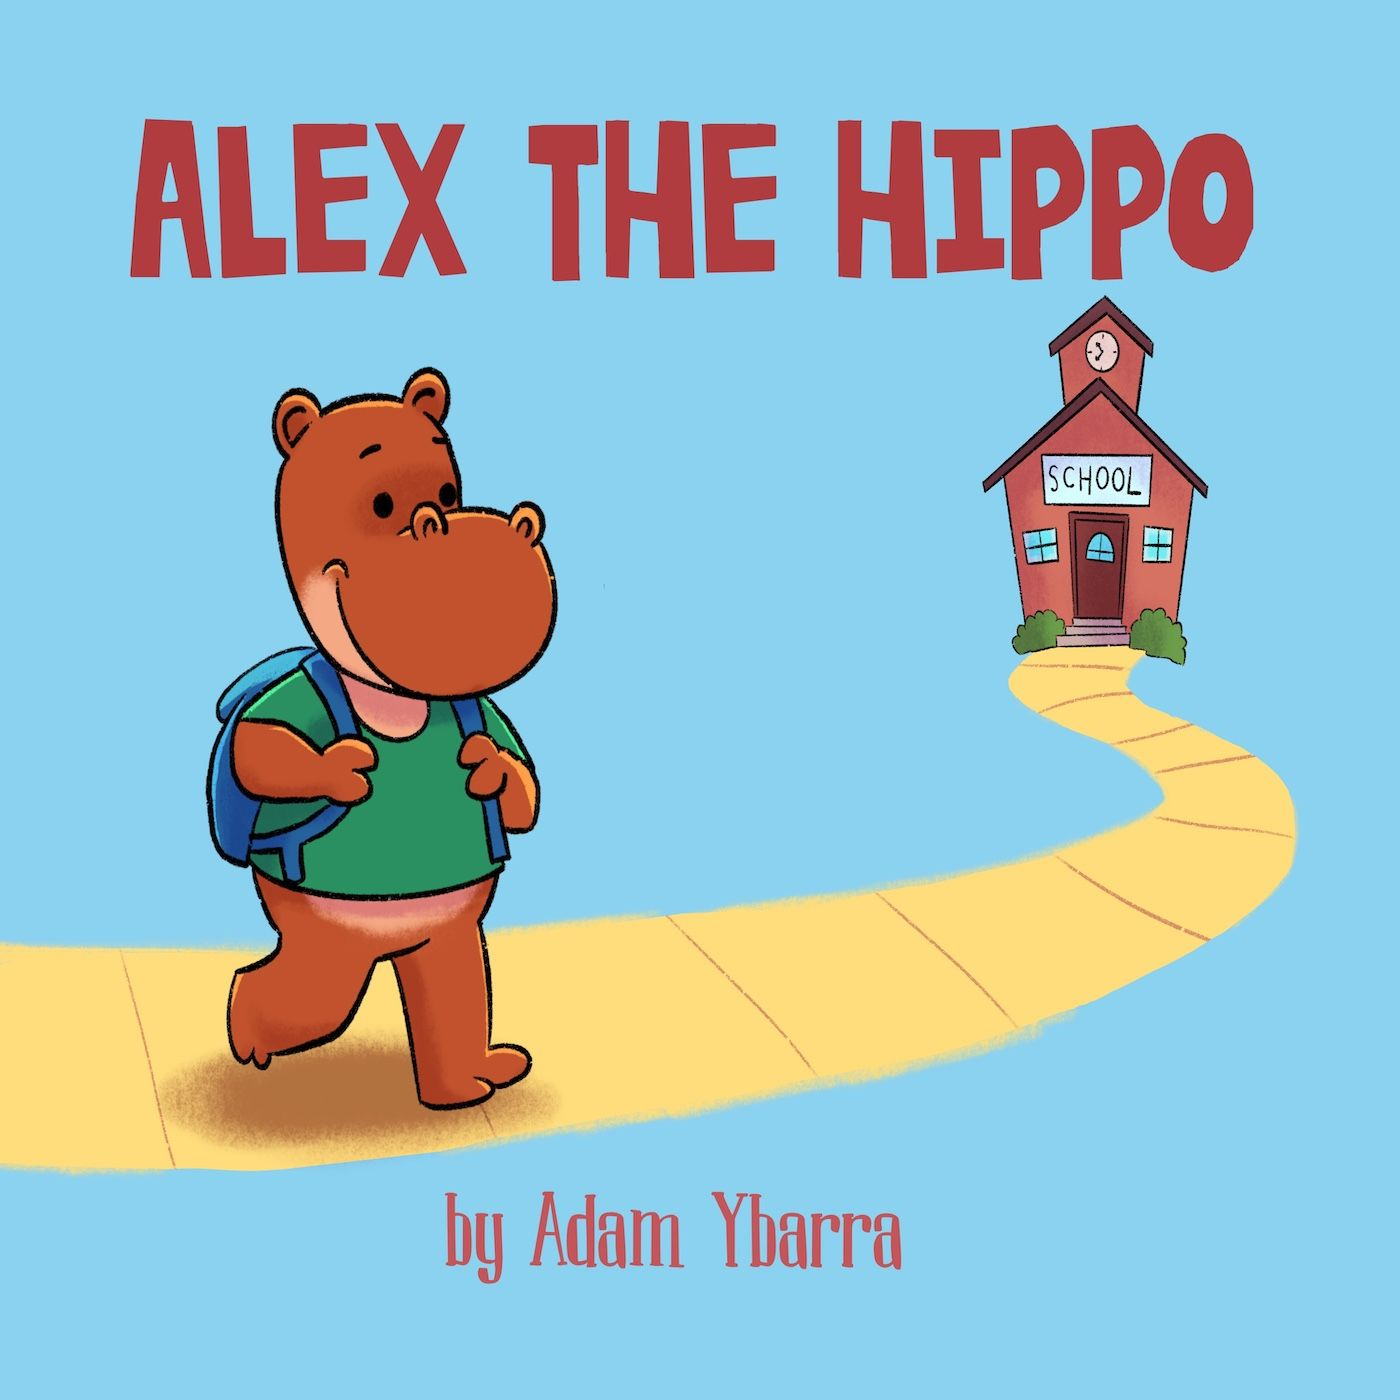 Bringing out the Best in Children